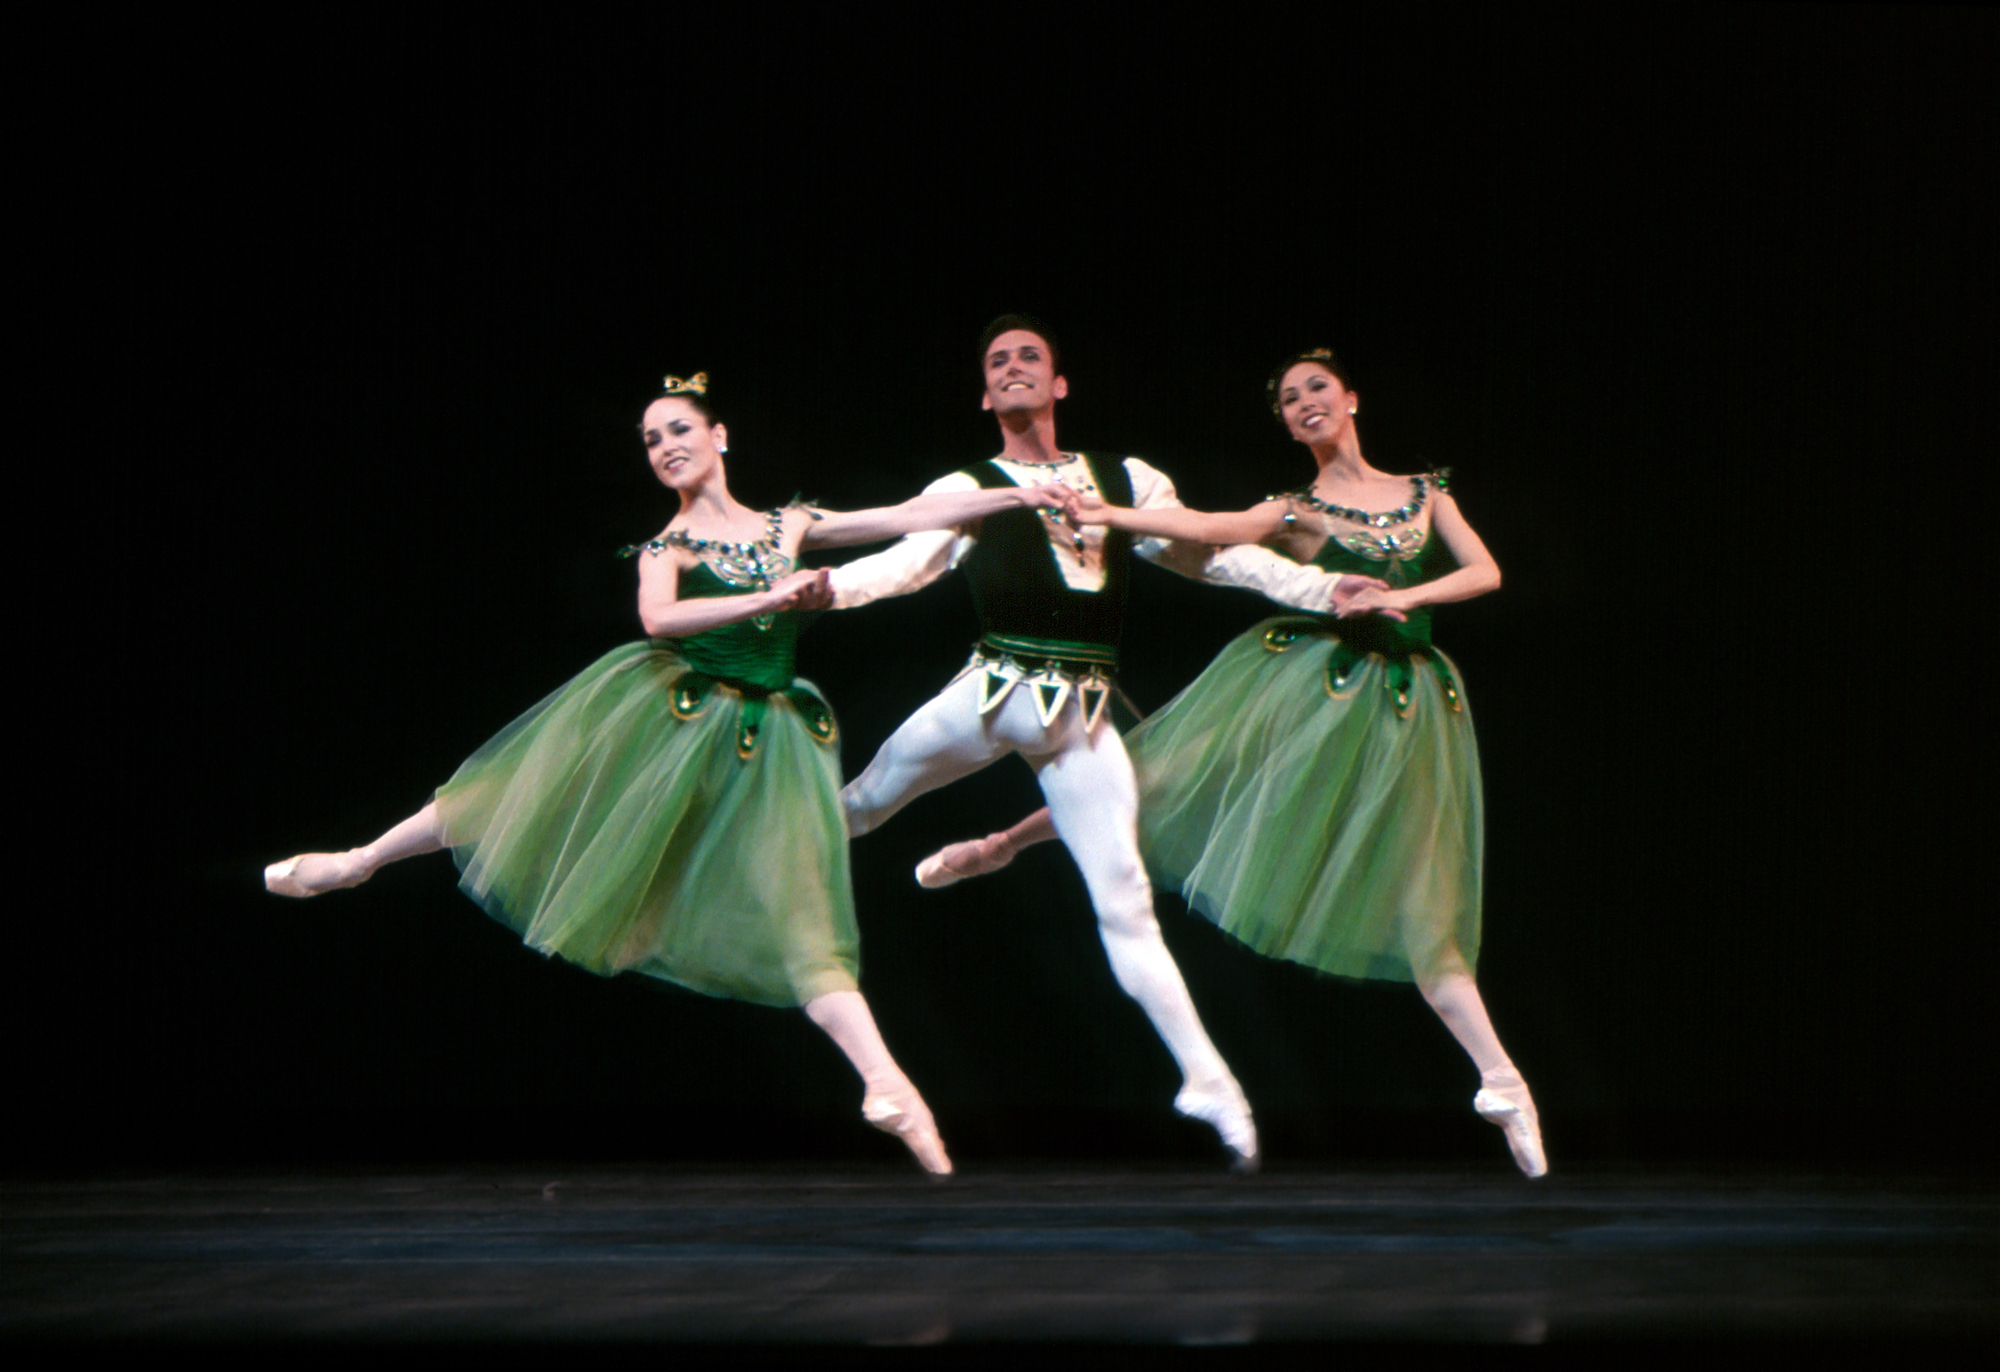 San Francisco Ballet in Balanchine's Emeralds. (Choreography by George Balanchine © The Balanchine Trust; Photo © Andrea Flores)